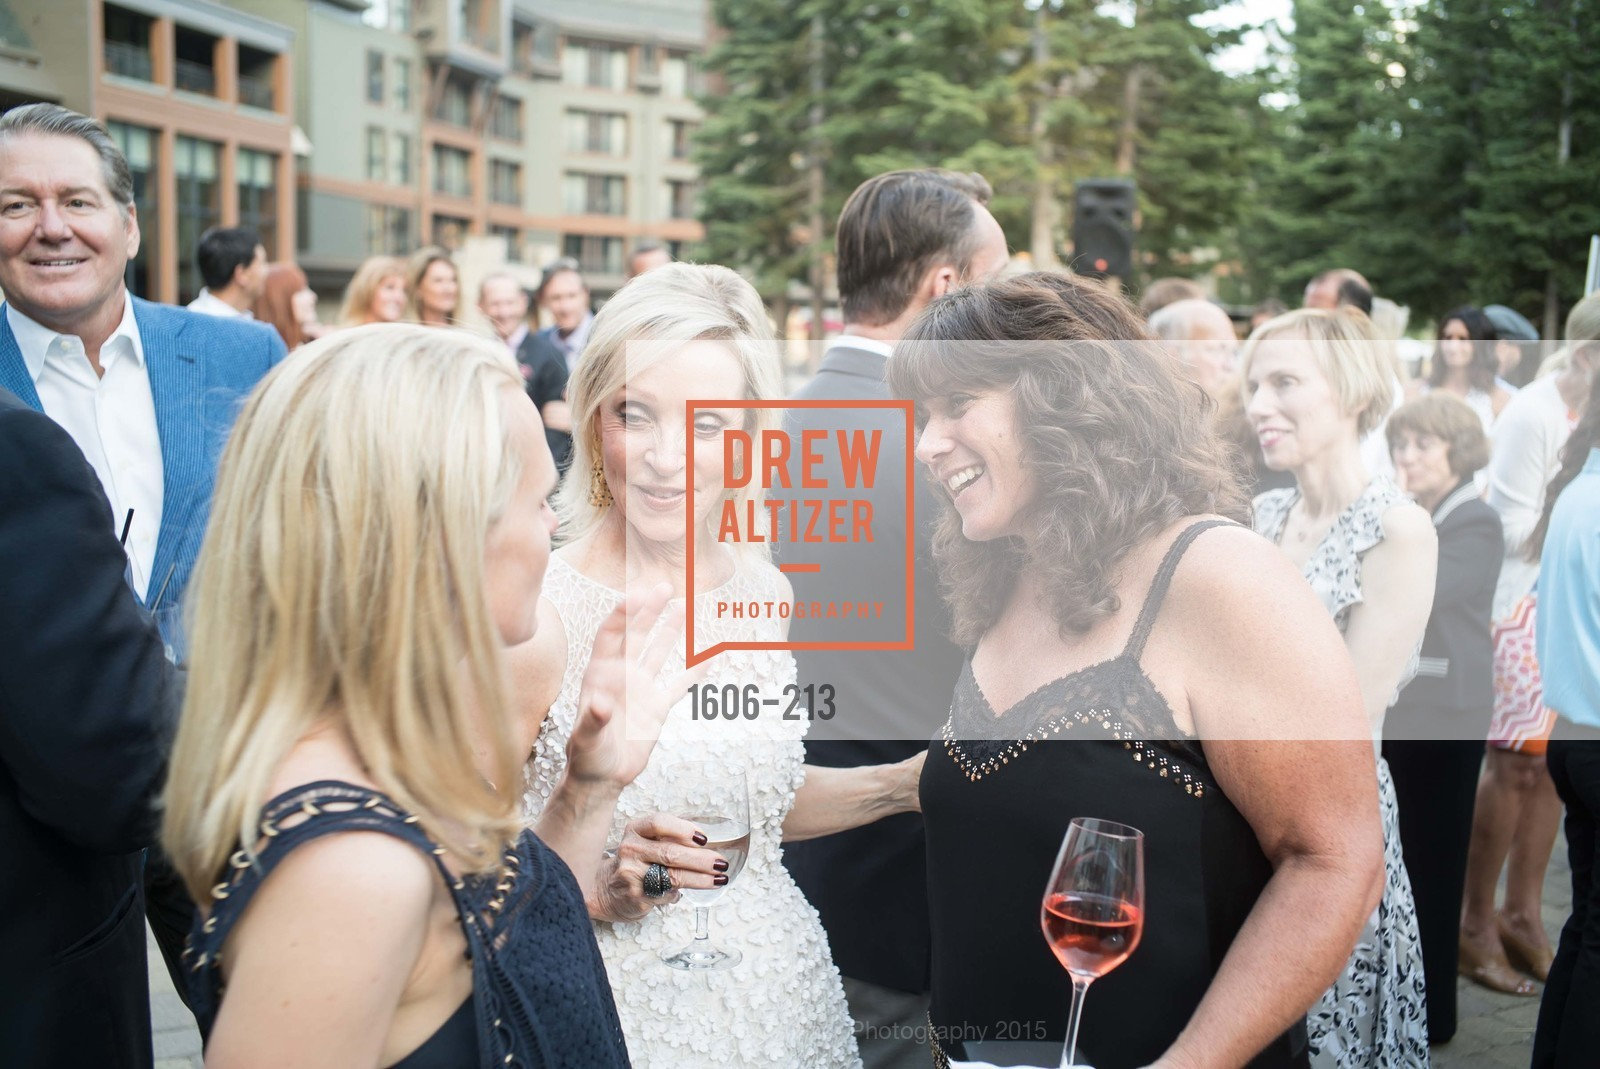 Barbara Brown, Kristen Keane, League to Save Lake Tahoe Sponsor Cocktail Party, Ritz-Carlton, Lake Tahoe, July 31st, 2015,Drew Altizer, Drew Altizer Photography, full-service agency, private events, San Francisco photographer, photographer california